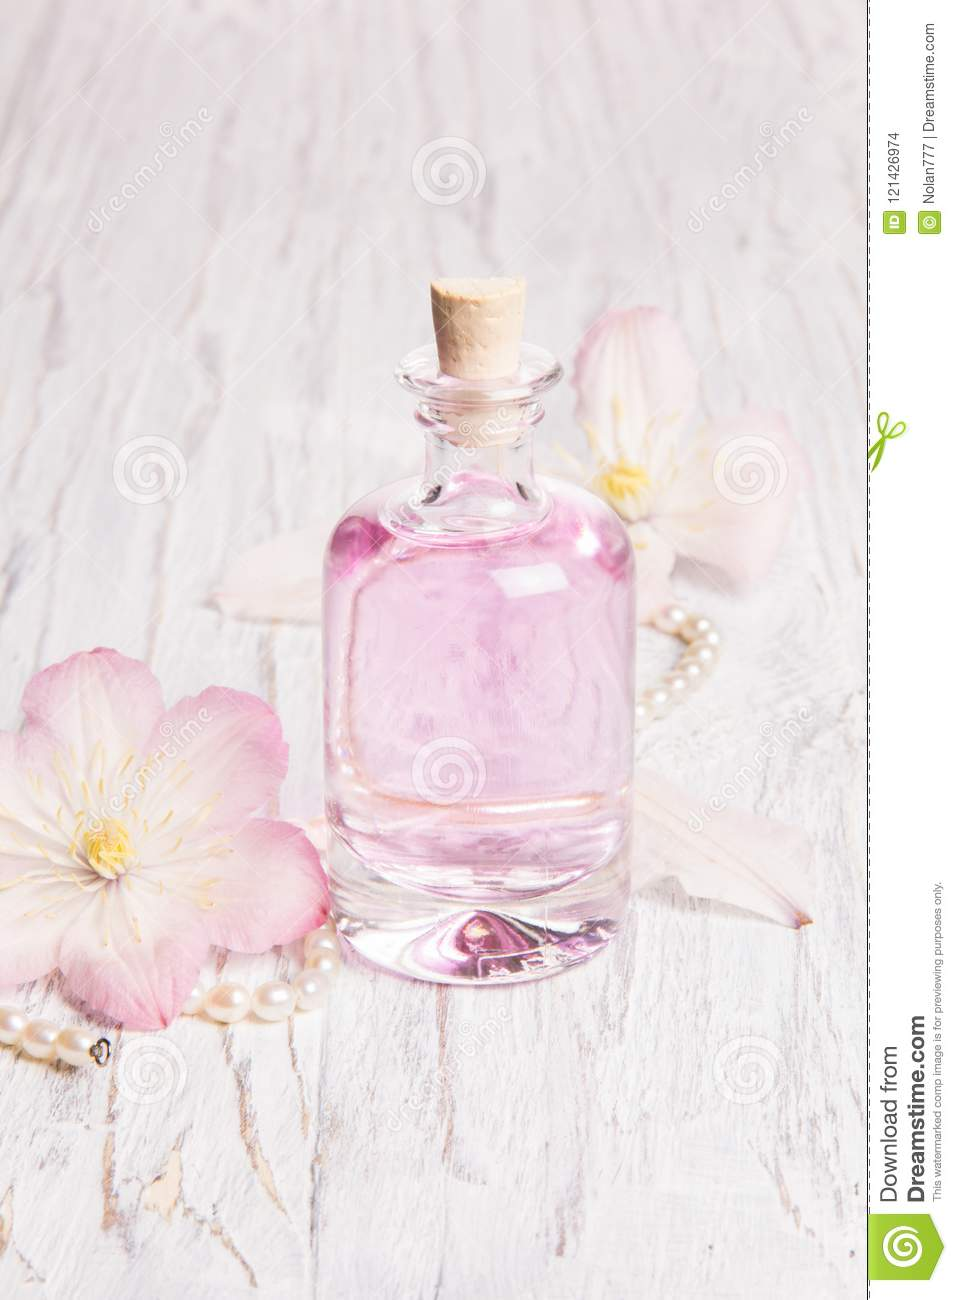 Perfume Bottle And White Flowers Stock Photo Image Of Object